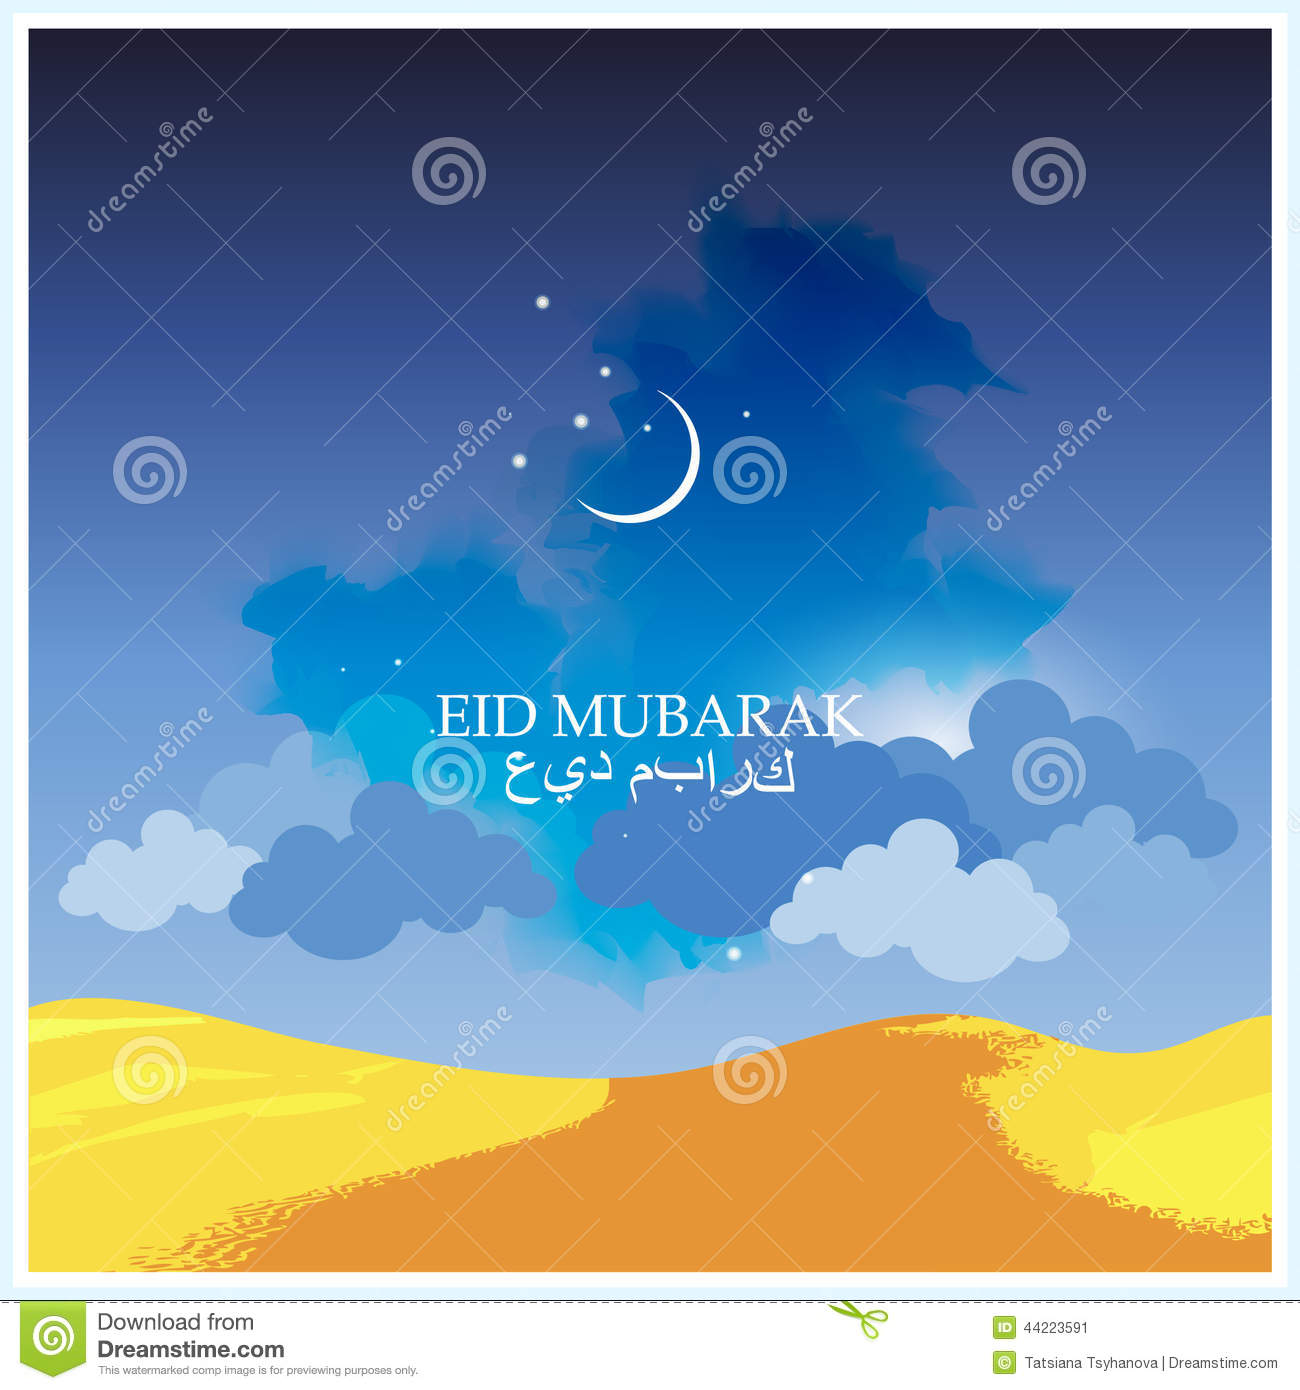 Must see Moon Star Light Eid Al-Fitr Decorations - eid-ul-fitr-eid-mubarak-greeting-card-arabic-pattern-decorated-light-beige-background-mosque-morning-nature-background-holy-44223591  Gallery_19377 .jpg